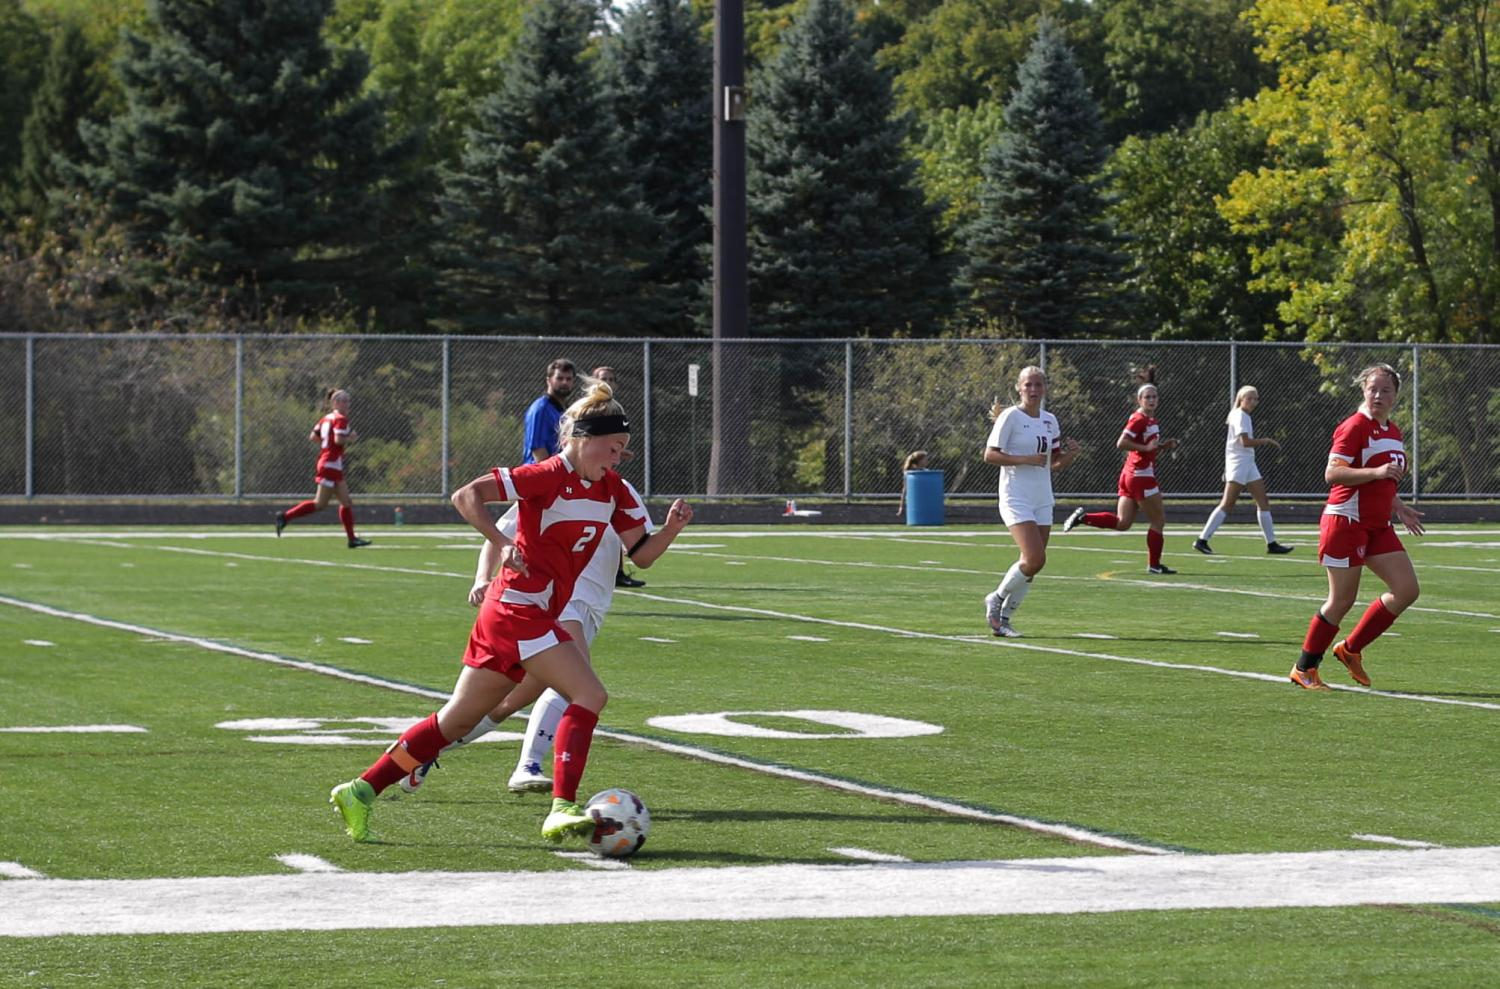 Senior captain Maddie Stoks dribbles past a defender in a recent game.